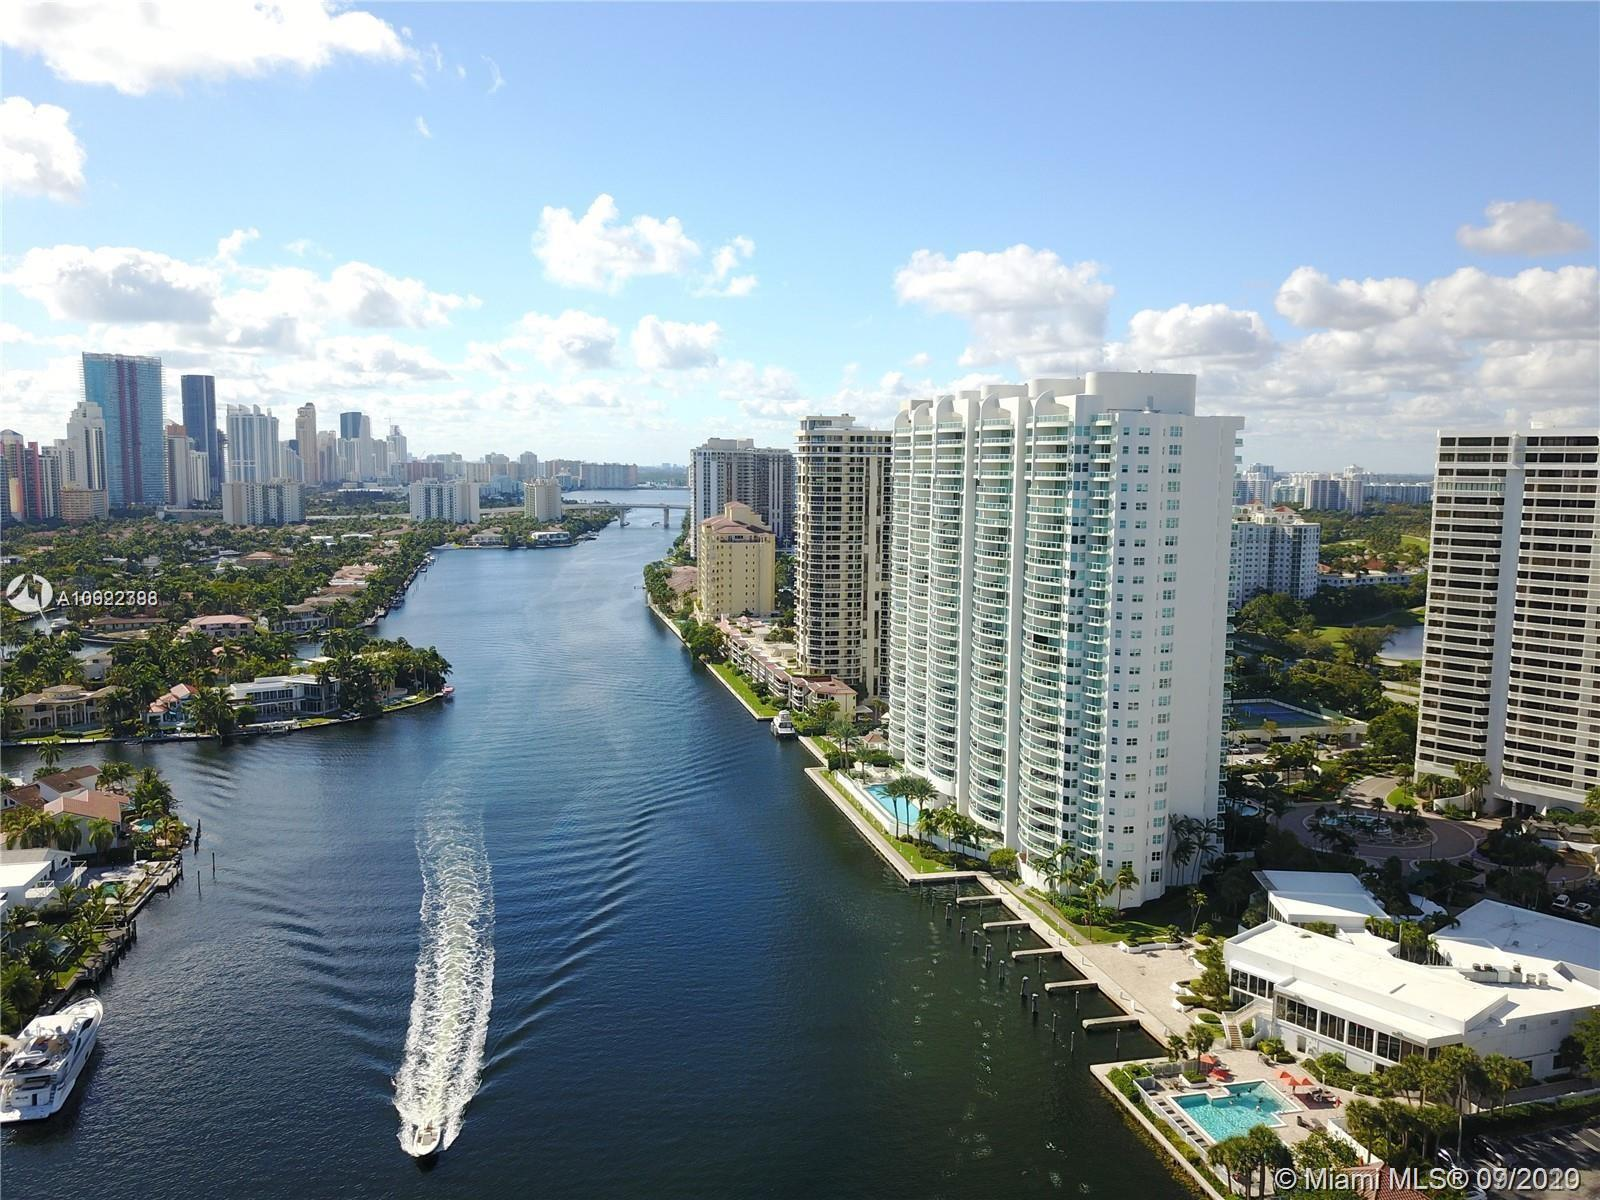 Luxury living luxury views! Located in the heart of Aventura, Hamptons South has spectacular views: